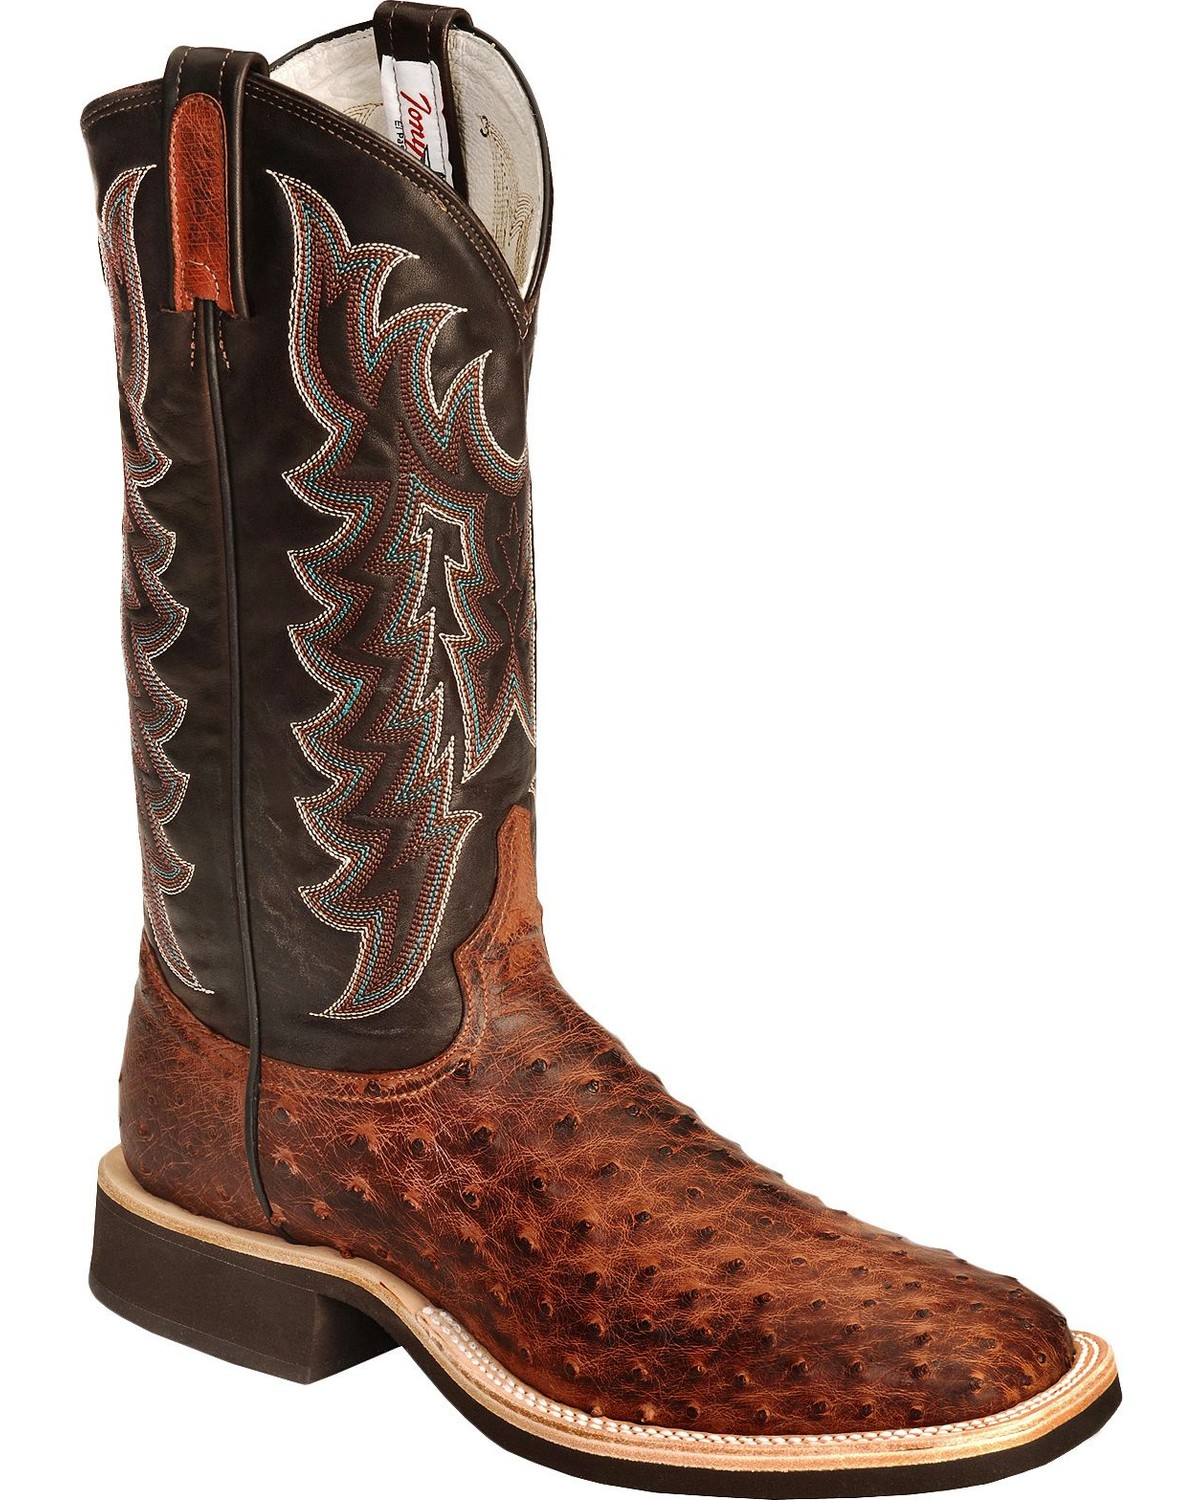 Tony Lama Vintage Full Quill Ostrich Crepe Cowboy Boots